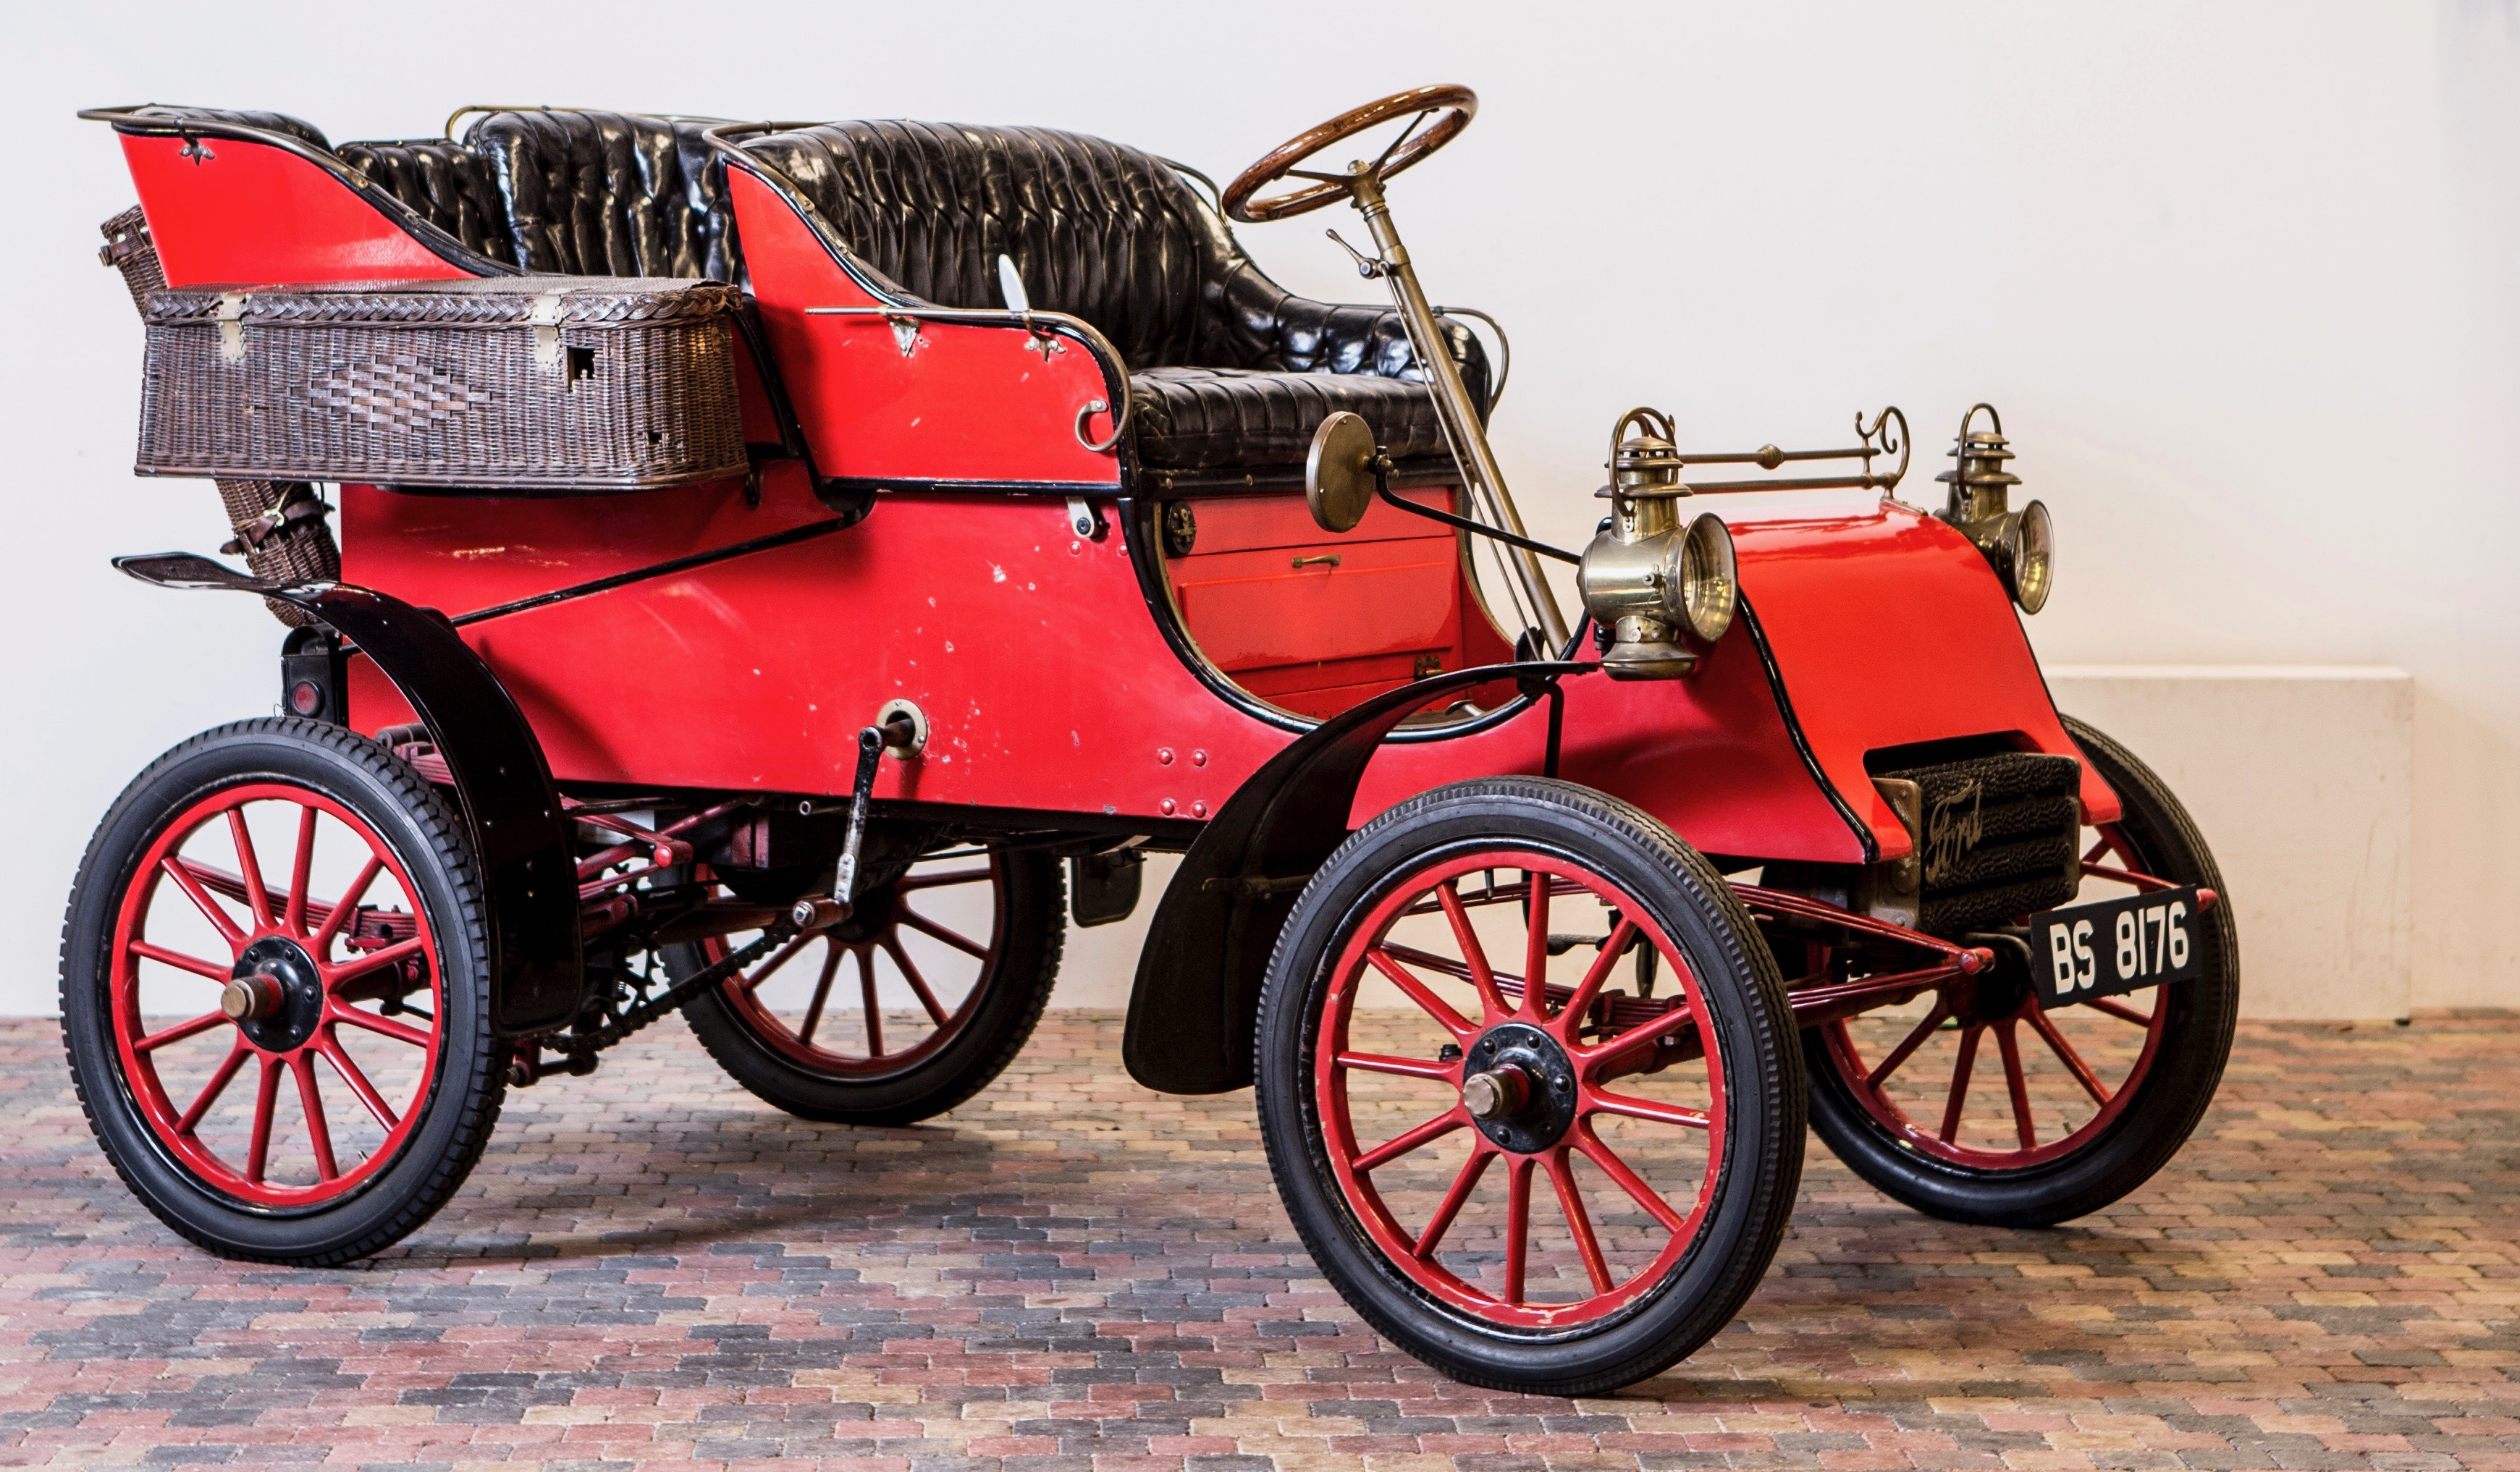 Netherlands Ford museum, Dutch Ford museum sale exceeds $7 million, ClassicCars.com Journal